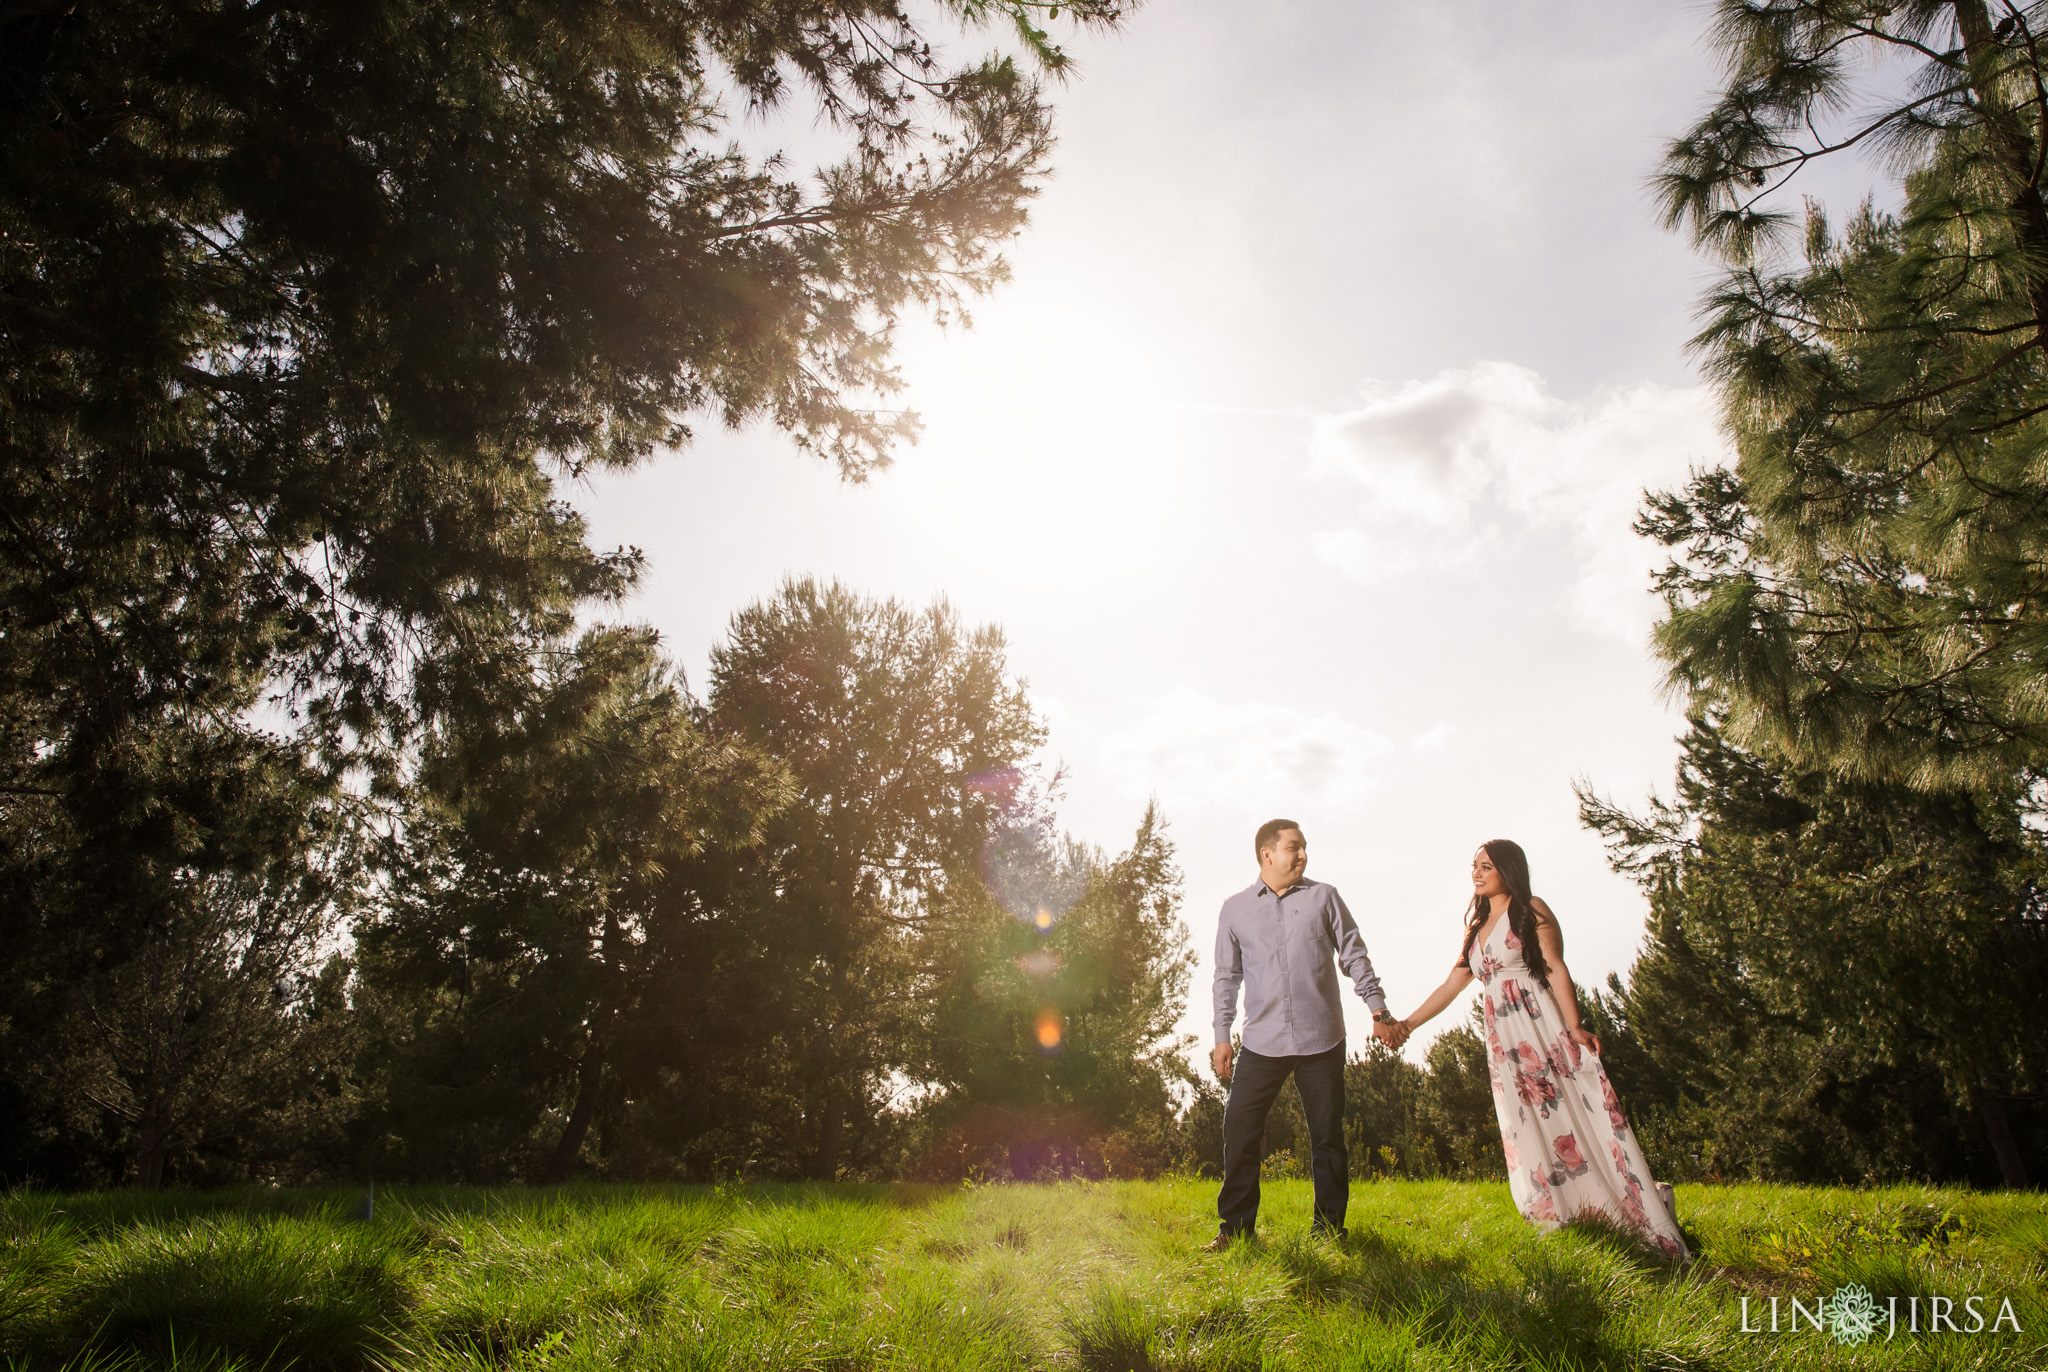 02 Jeffrey Open Space Trail Orange County Engagement Photography